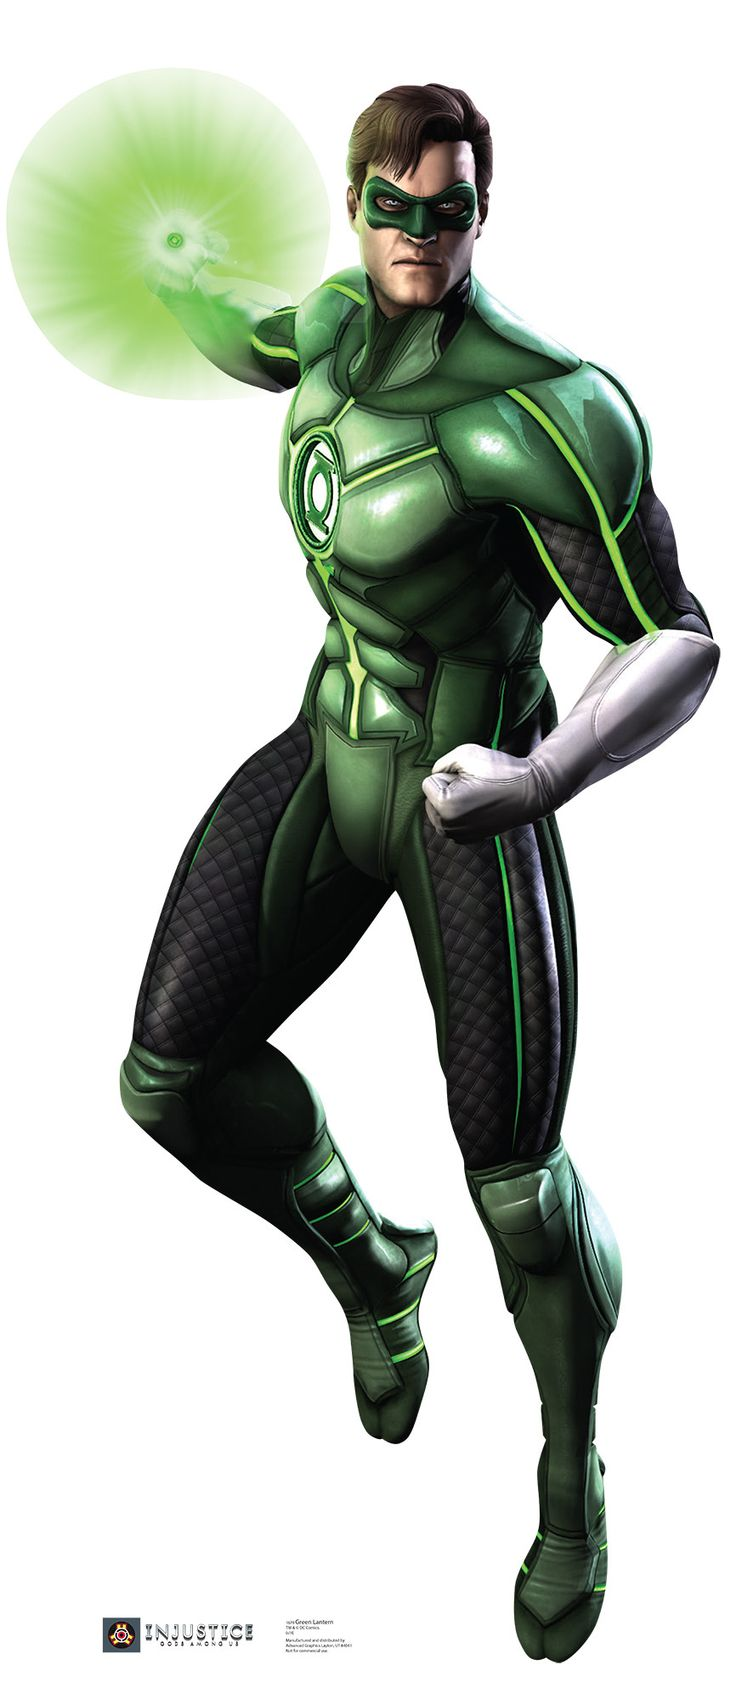 Green Lantern - Injustice DC Comics Game Cardboard Standup